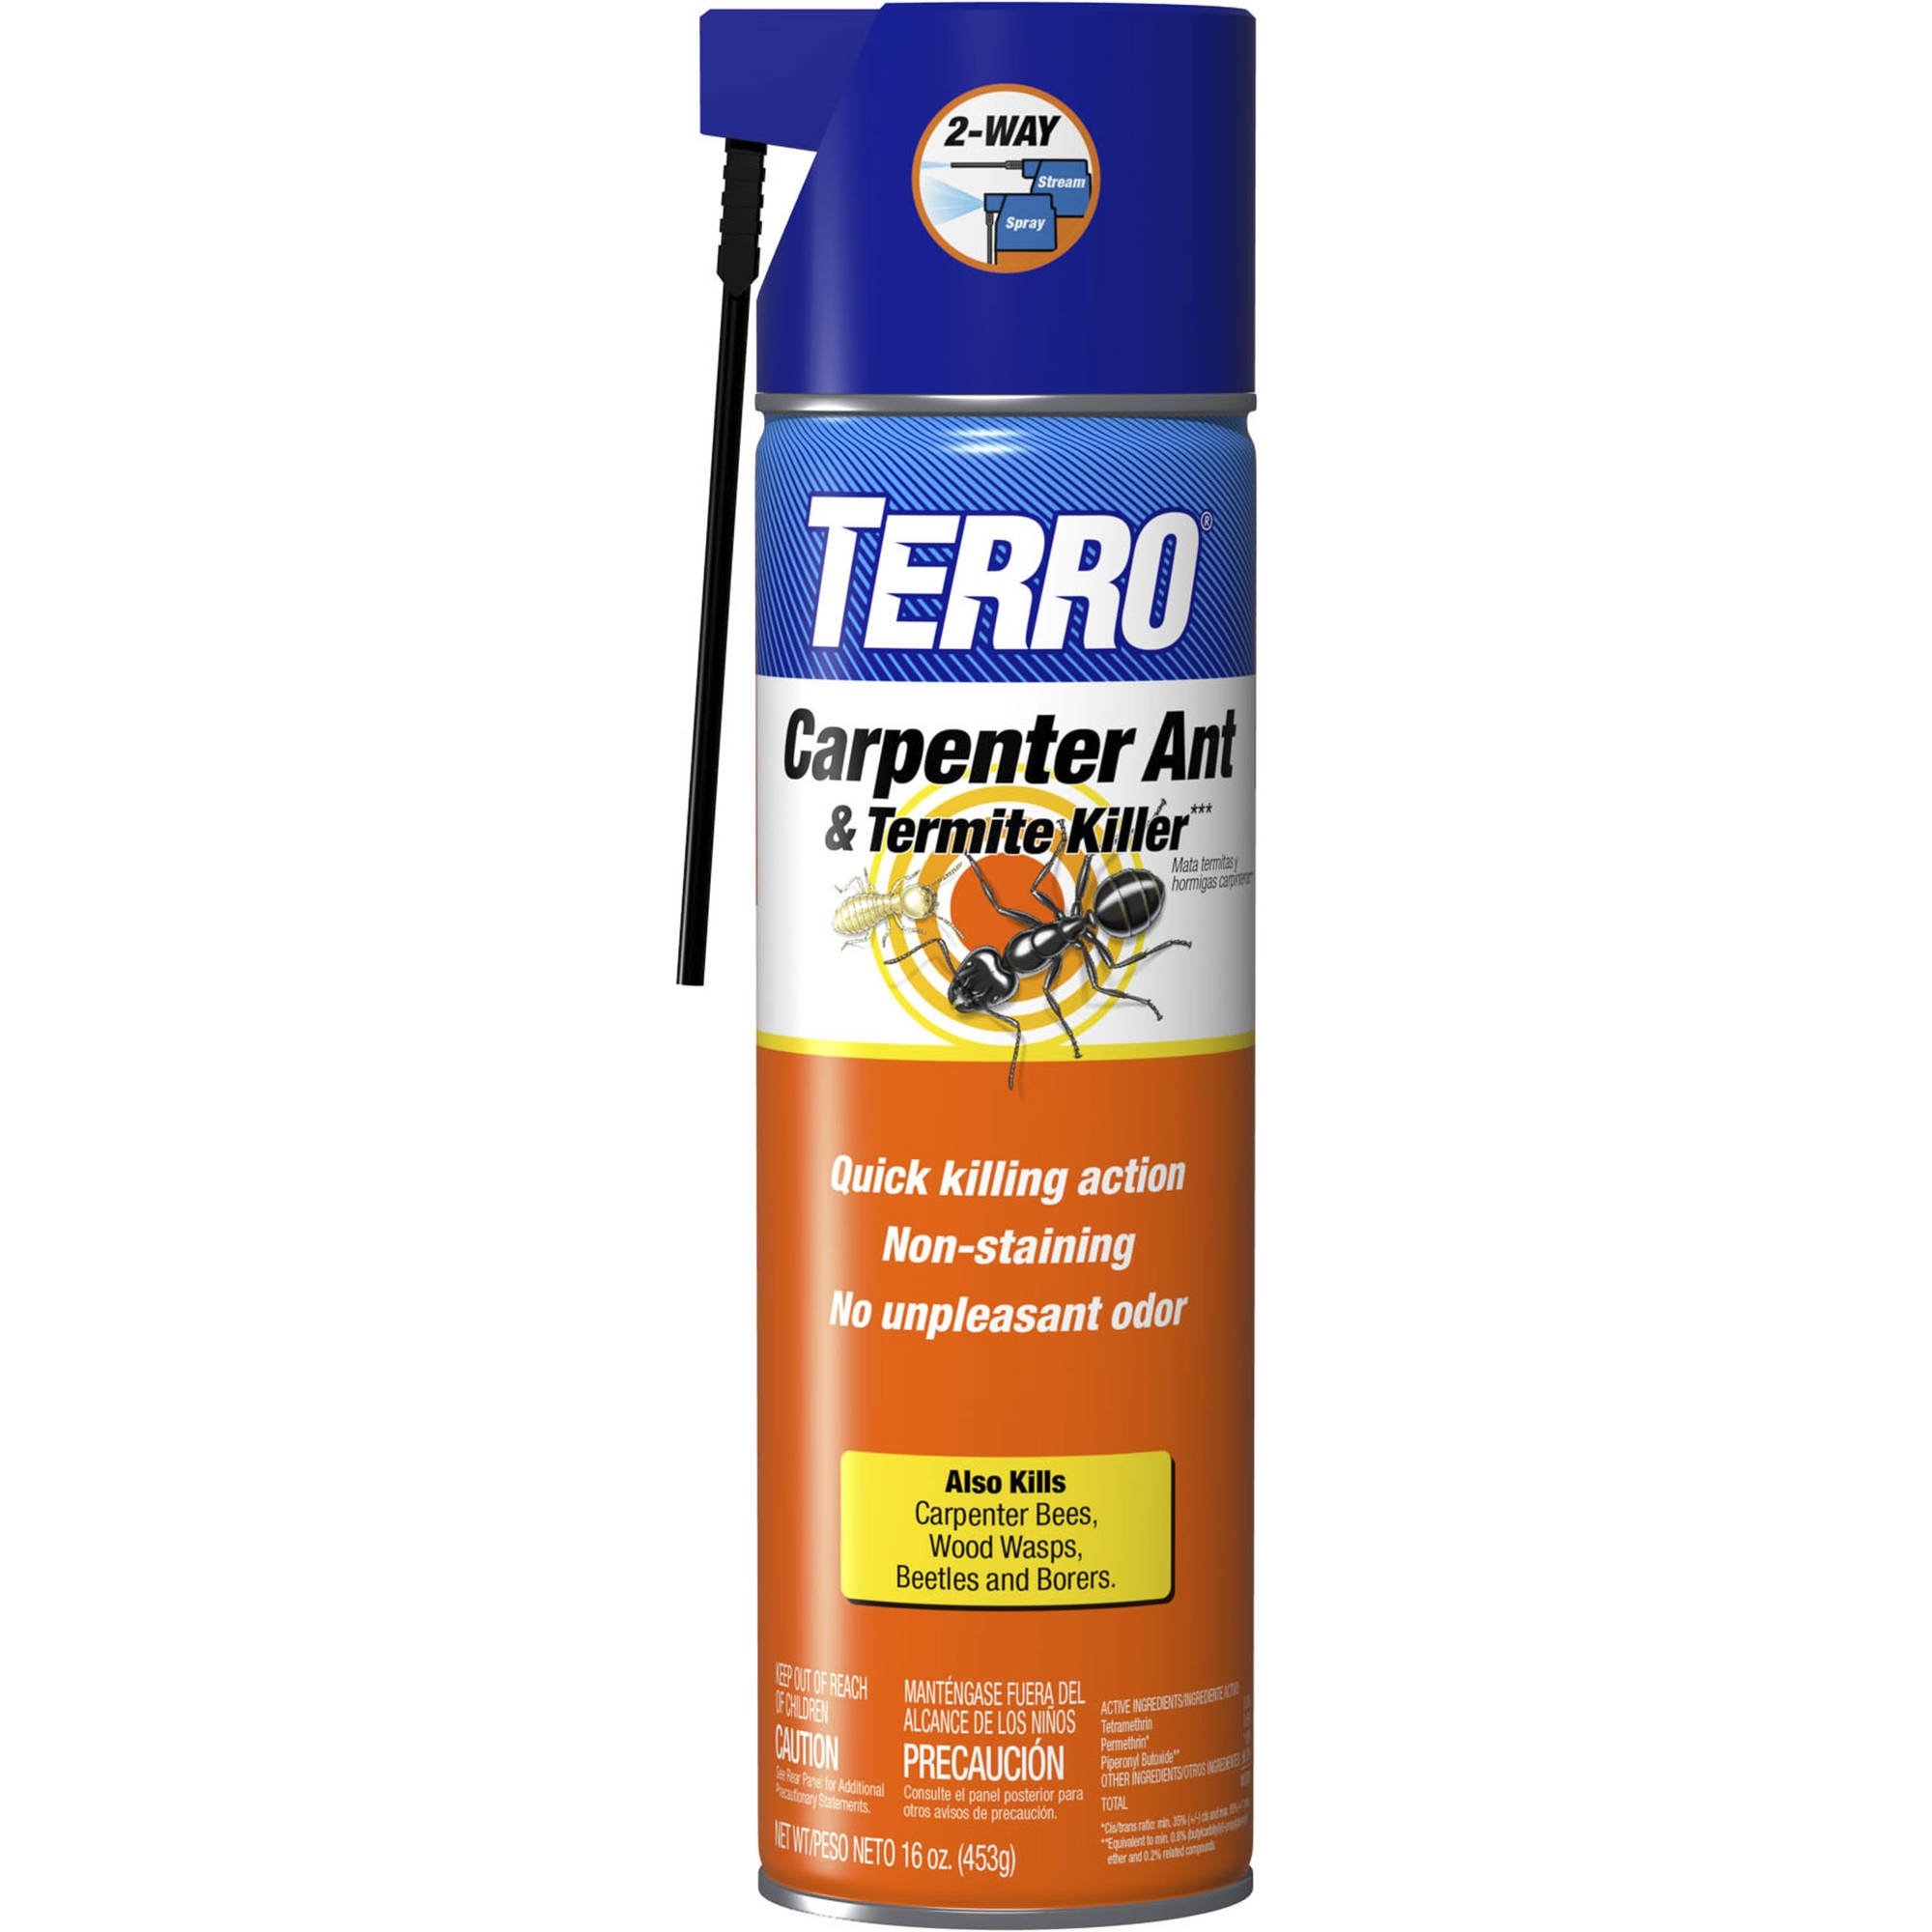 TERRO Carpenter Ant and Termite Killer Aerosol